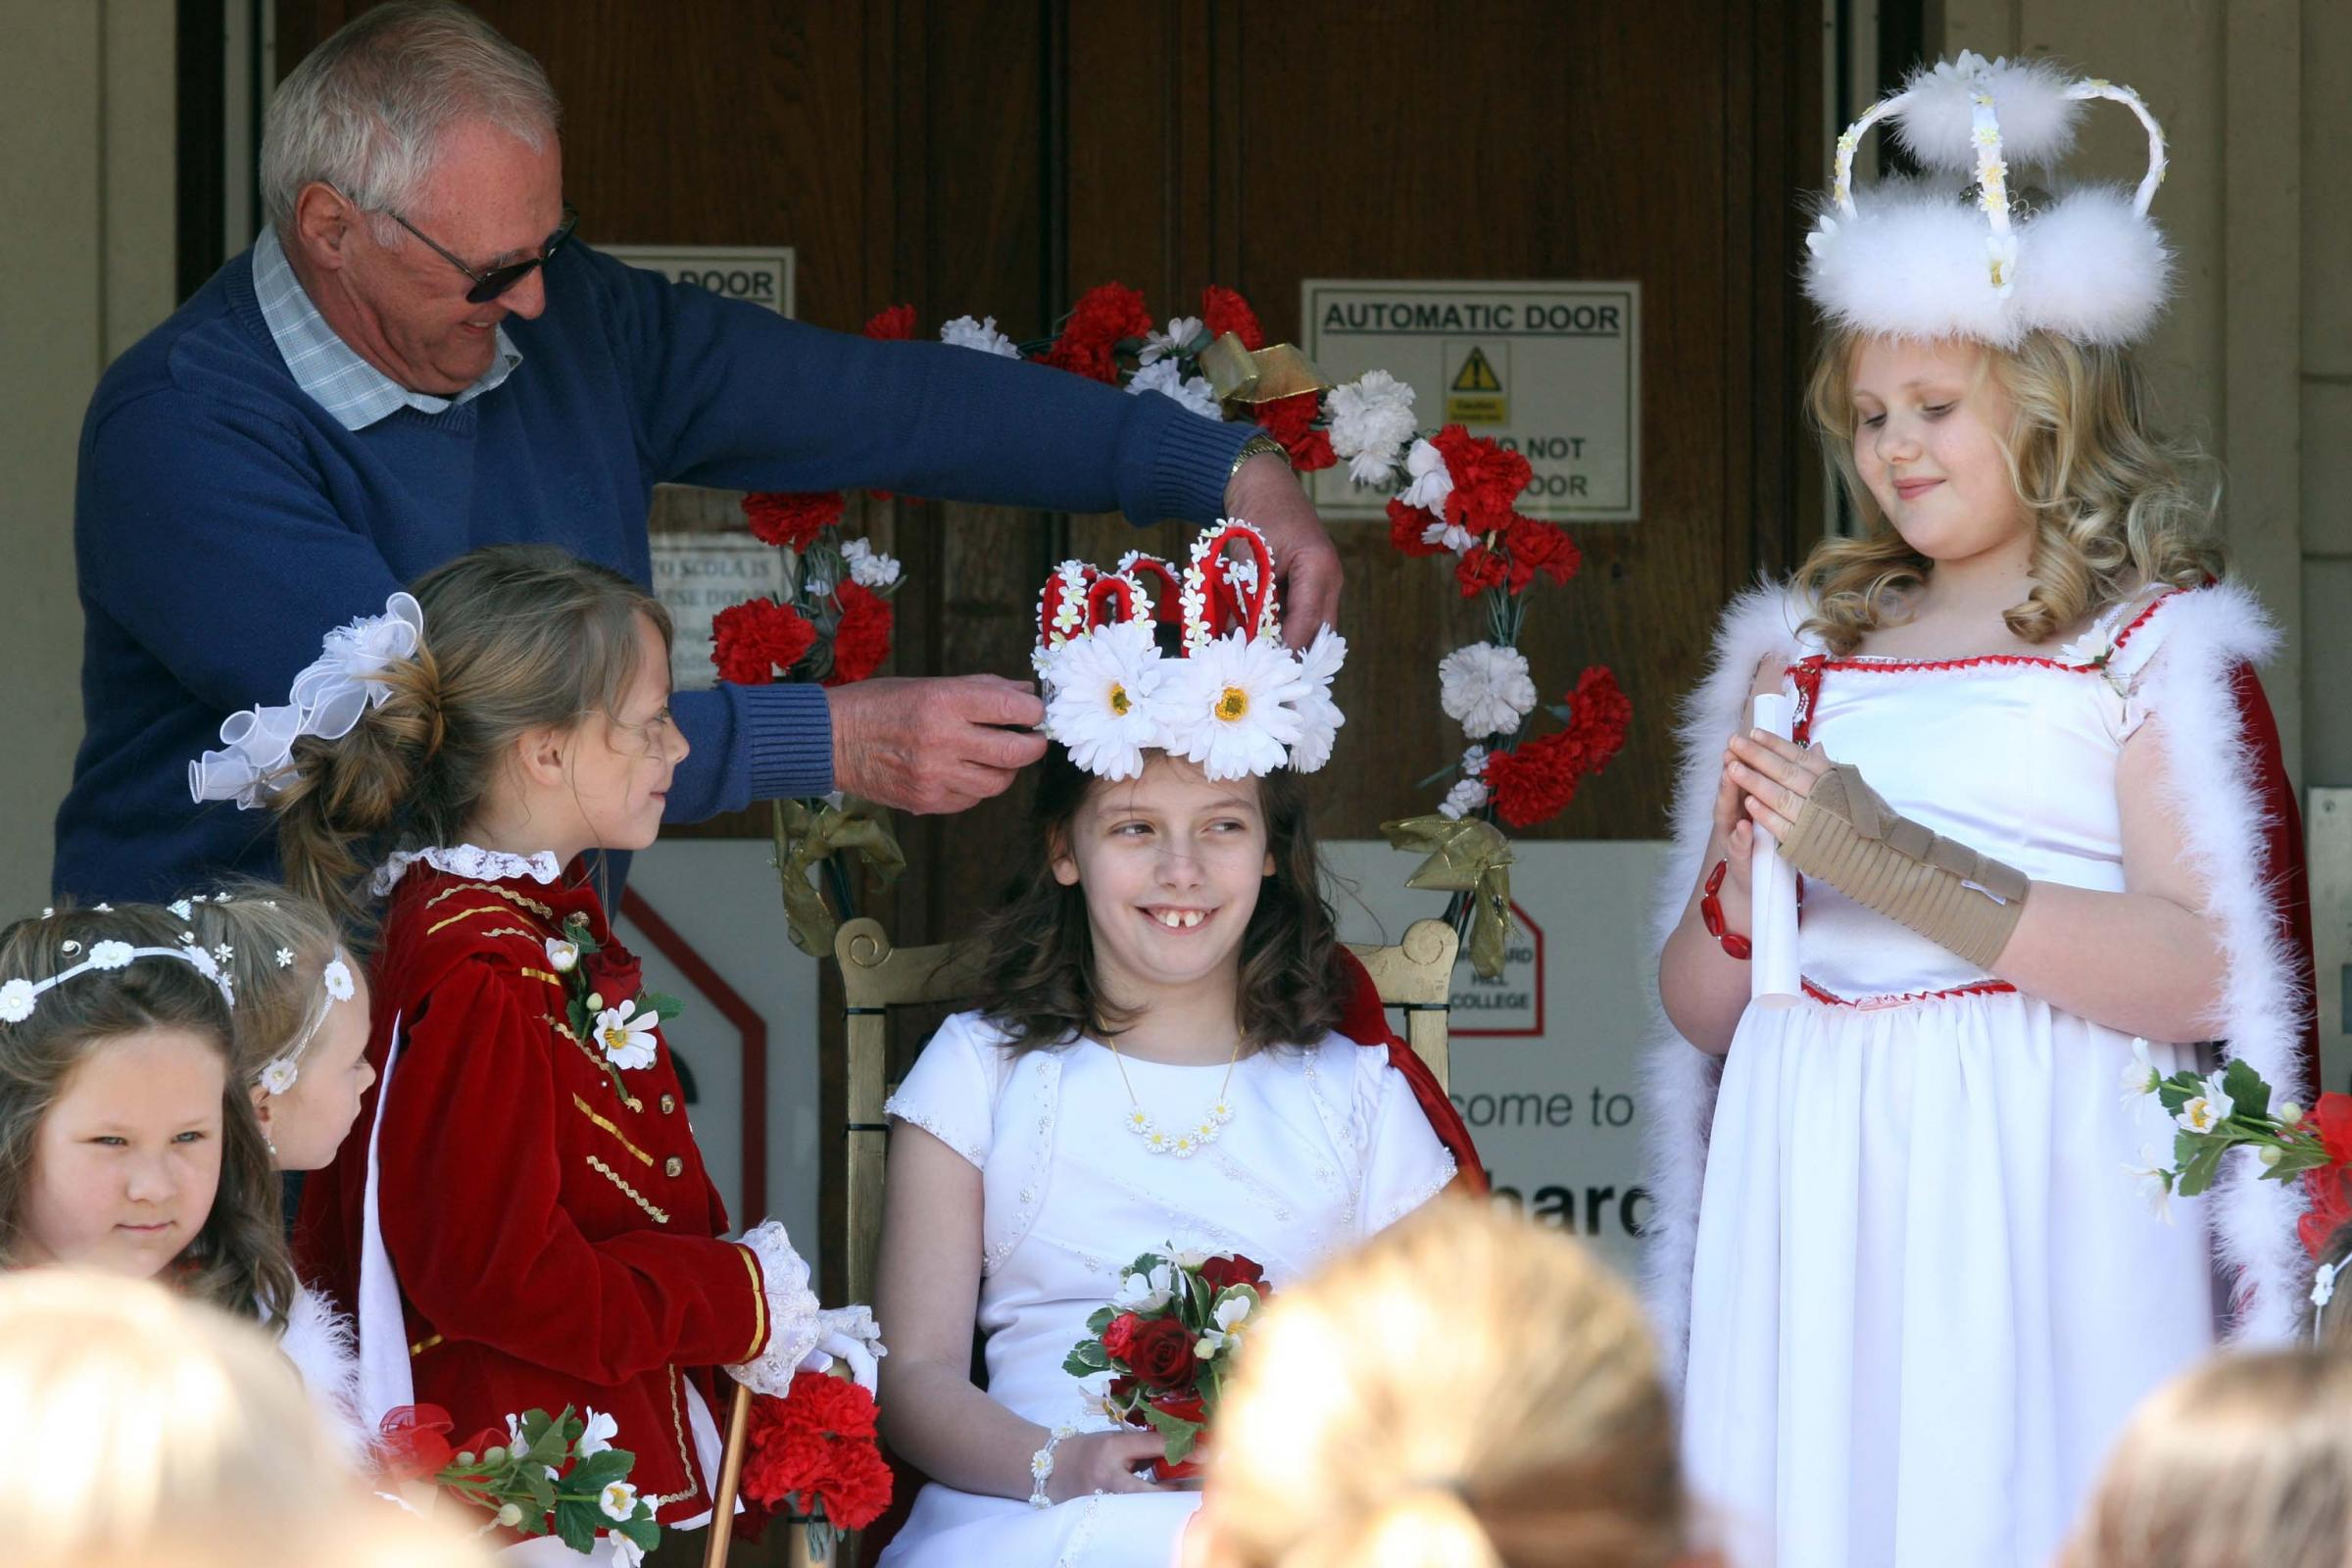 Traditional Ceremony: 9-year-old Annabel Jones is crowned May Queen